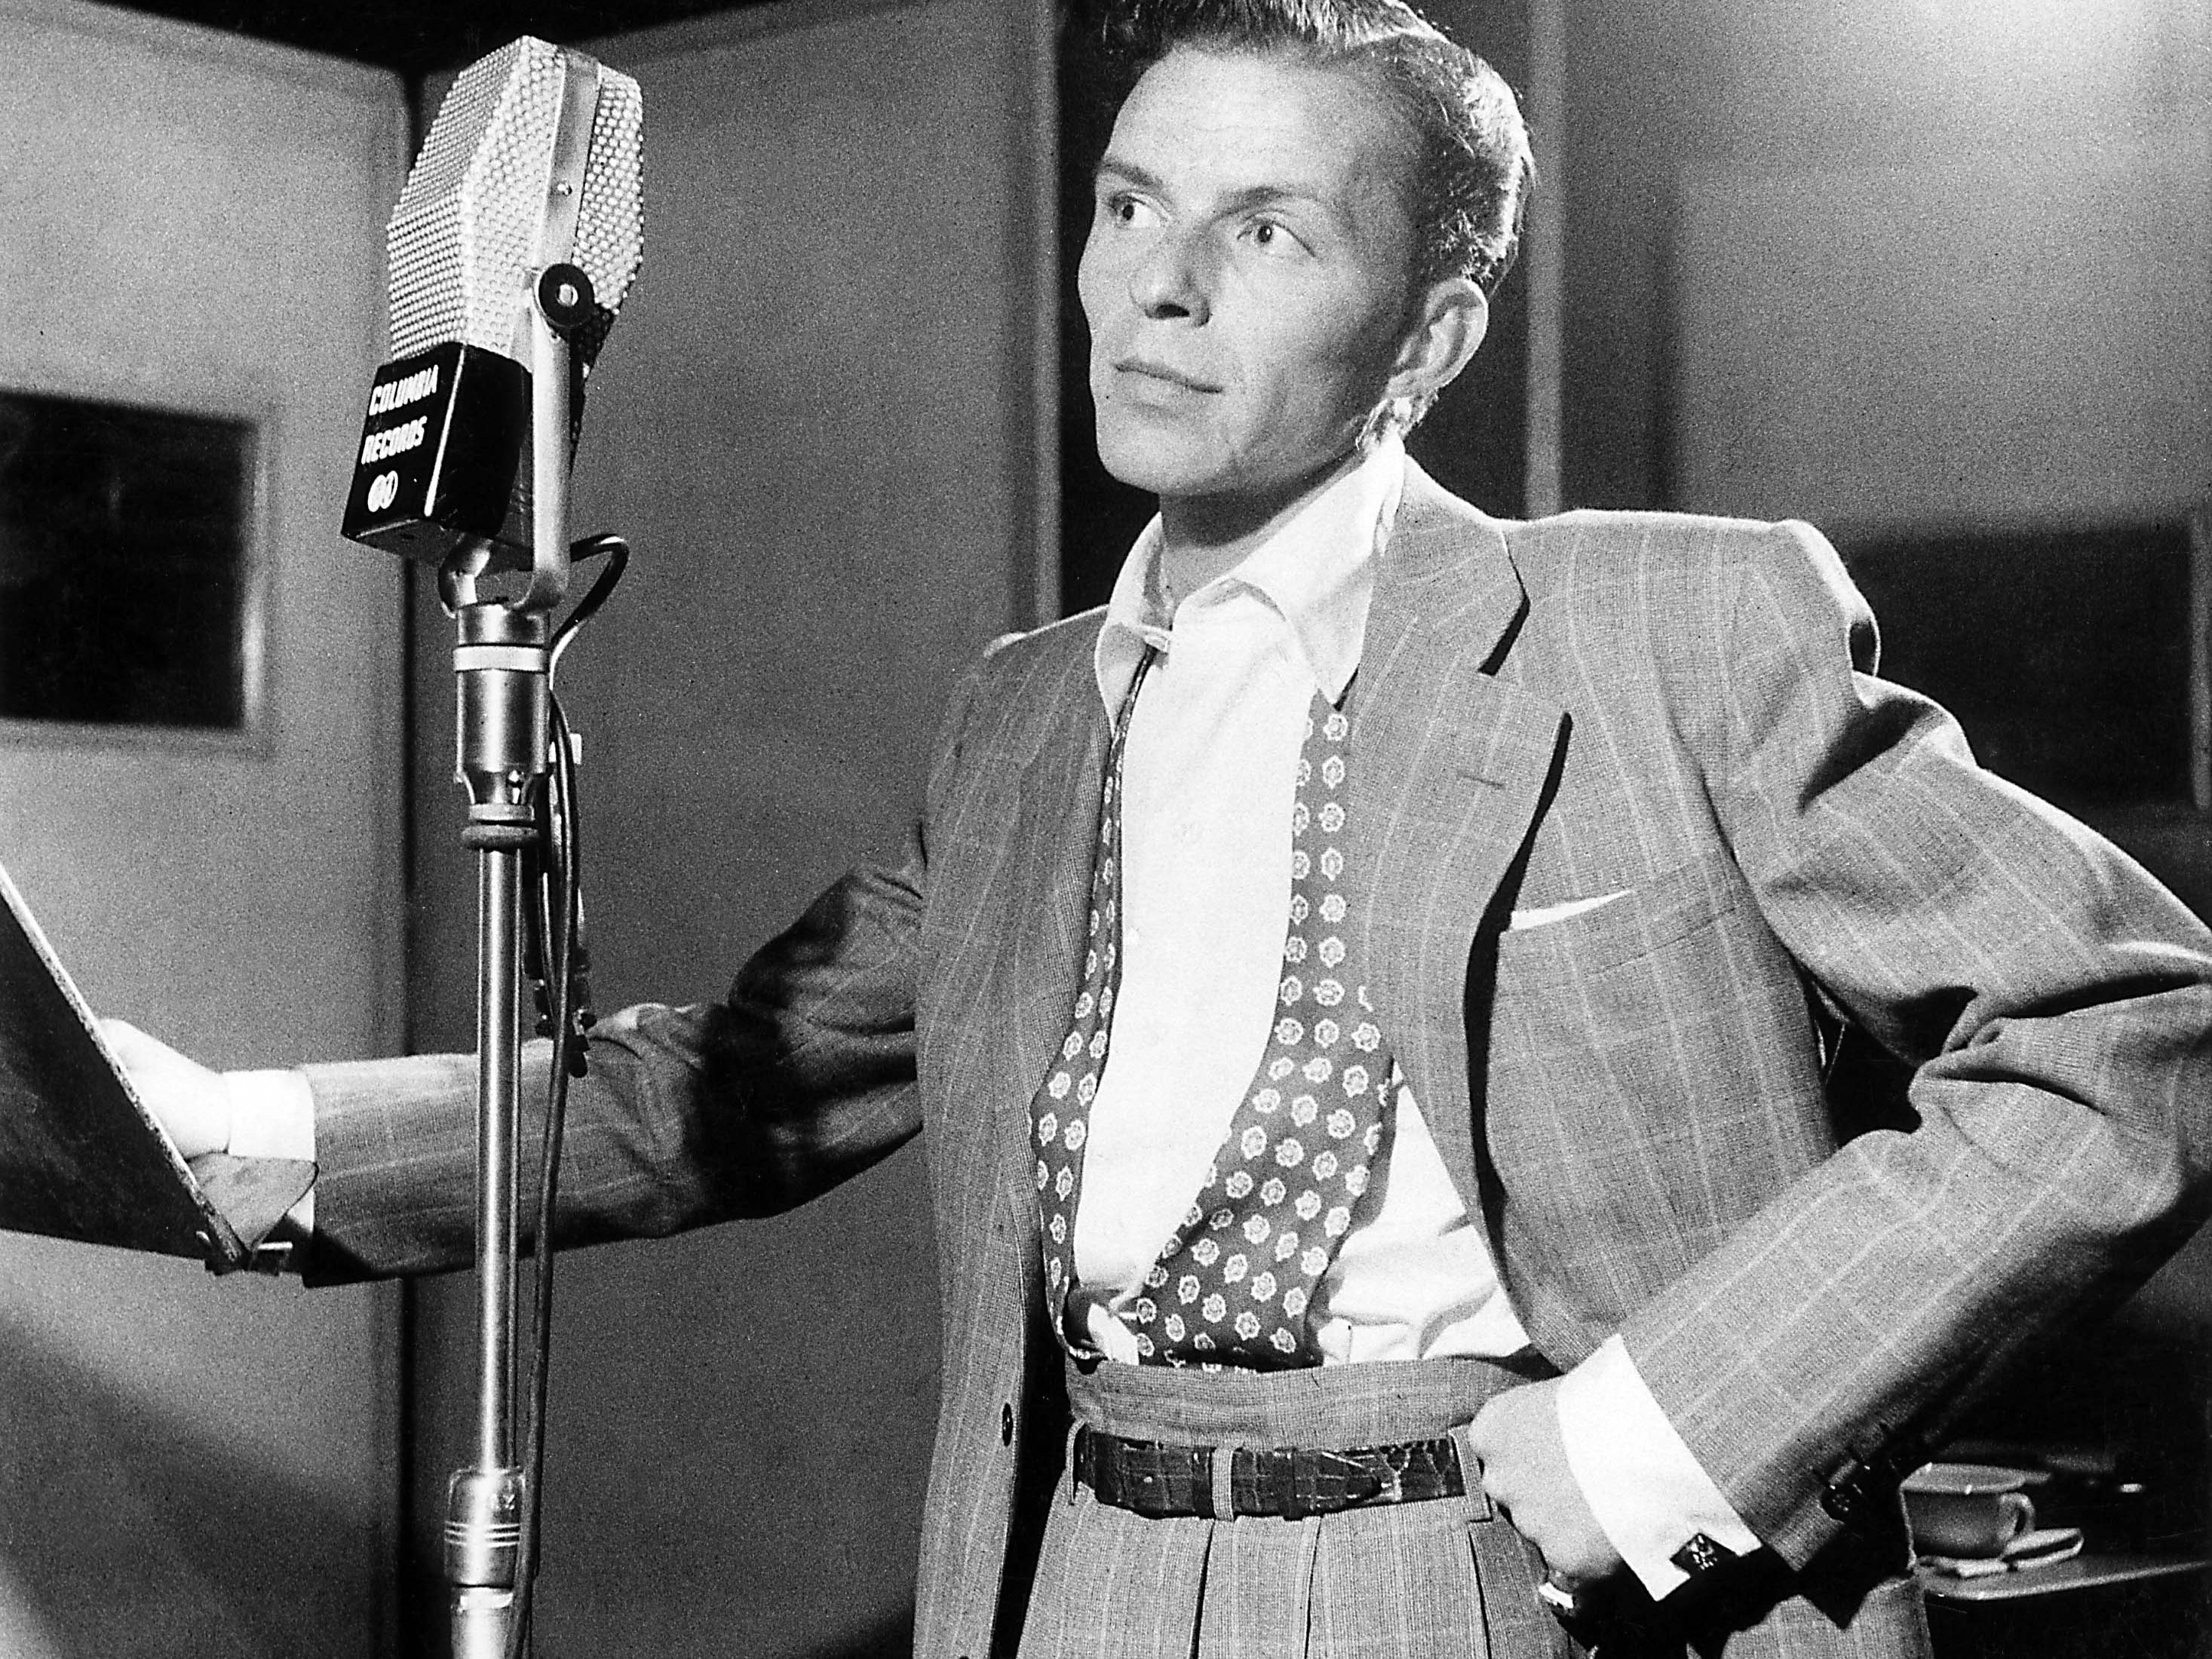 Chicago, all that jazz, 1. 40 Best Frank Sinatra Songs To Play At Your Wedding